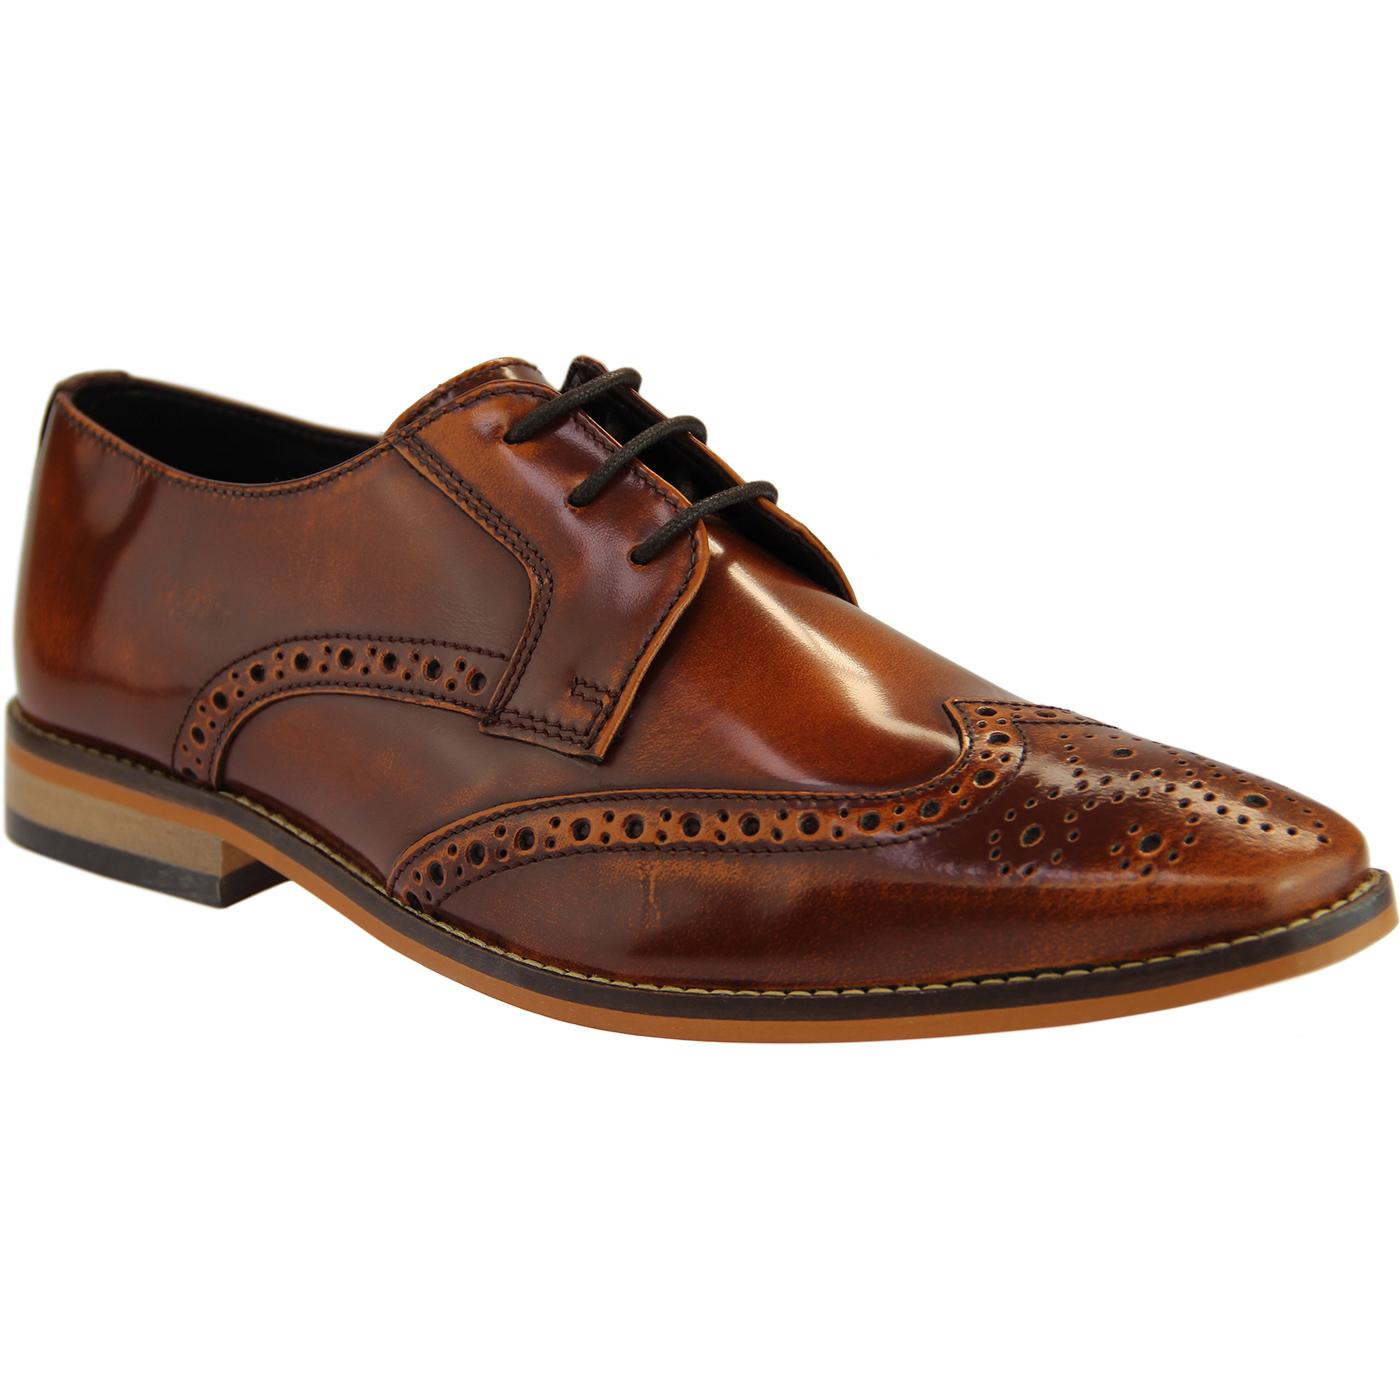 Ramsay IKON Men's Mod Burnished Leather Brogues T